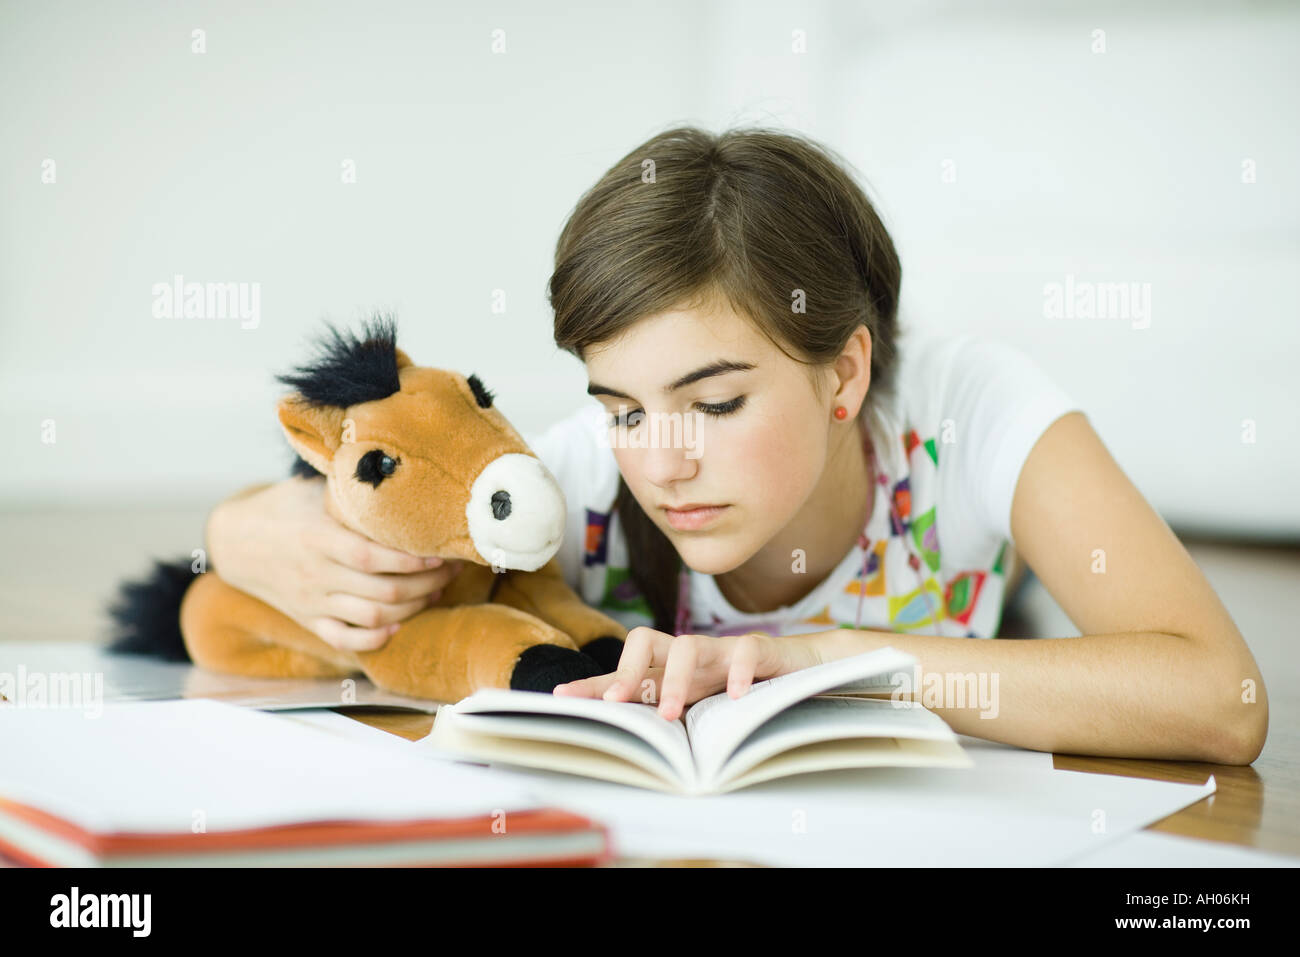 Young woman lying on floor listening to headphones and doing homework  Royalty free stock photo